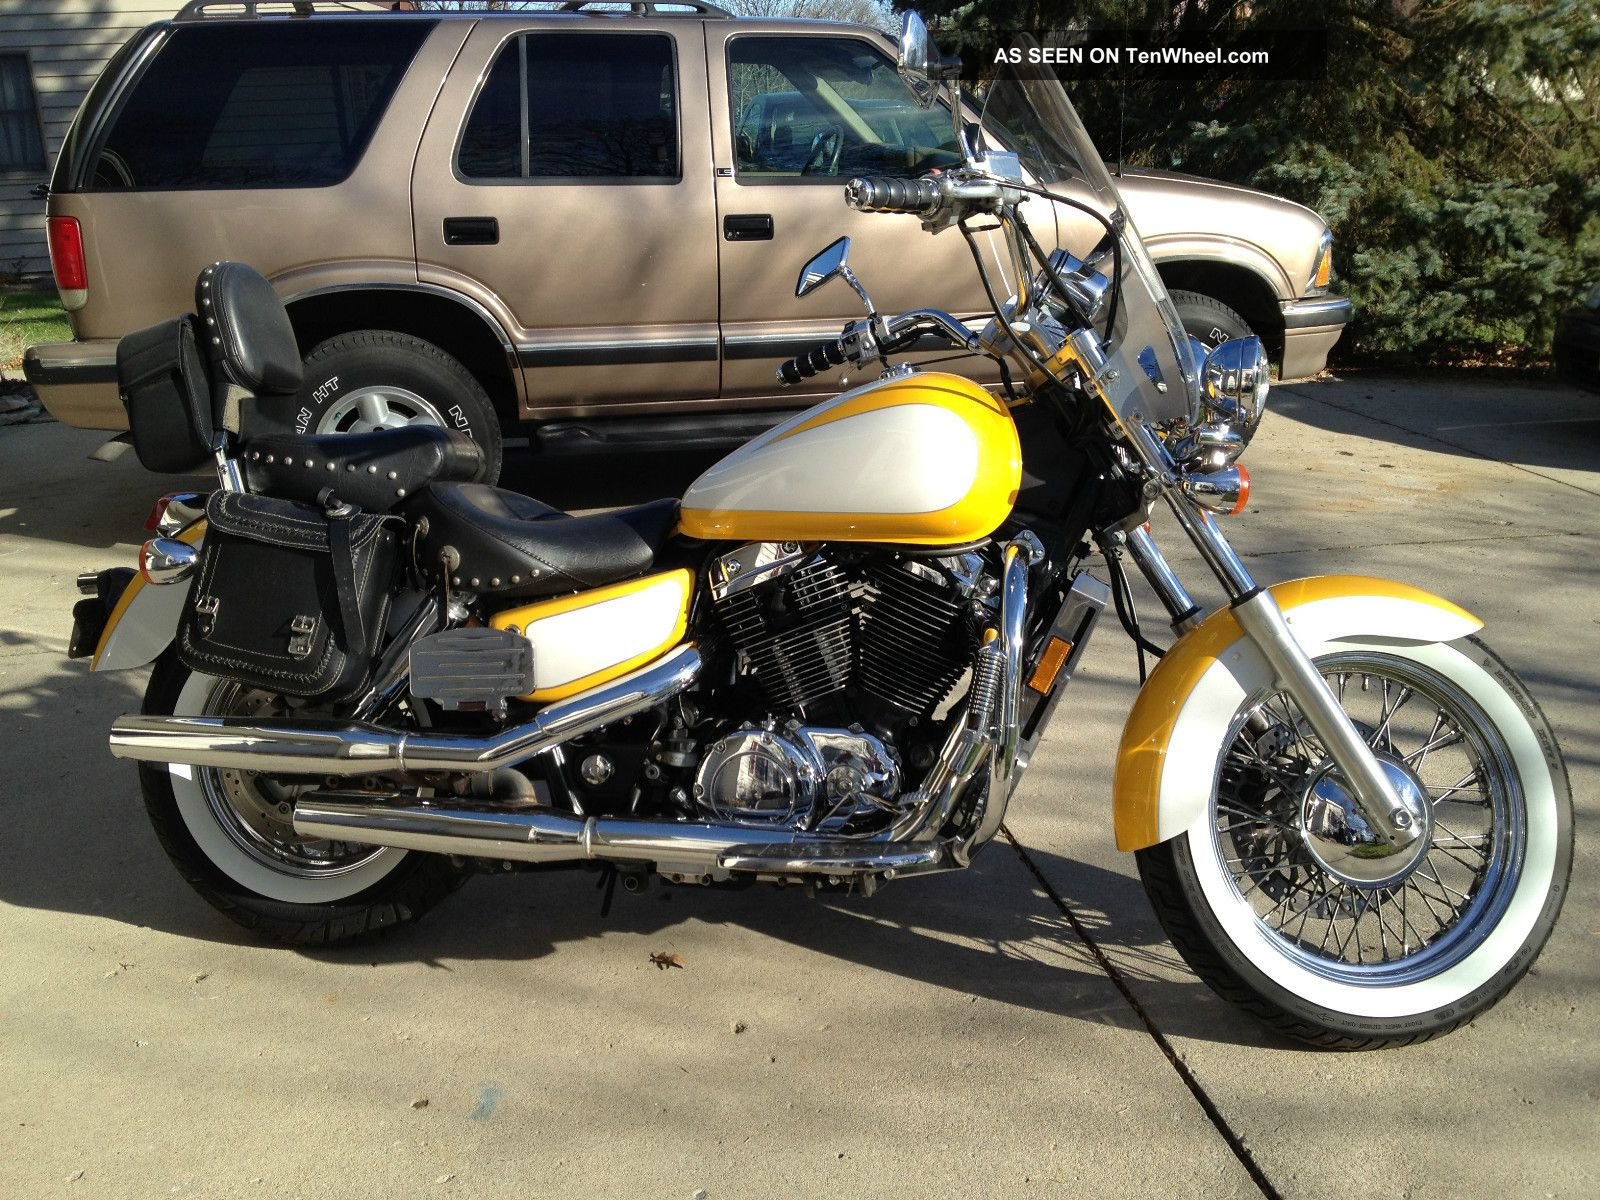 ... 2002 honda shadow 1100 wiring diagram 2002 get free image about wiring  diagram 1999 Honda Shadow